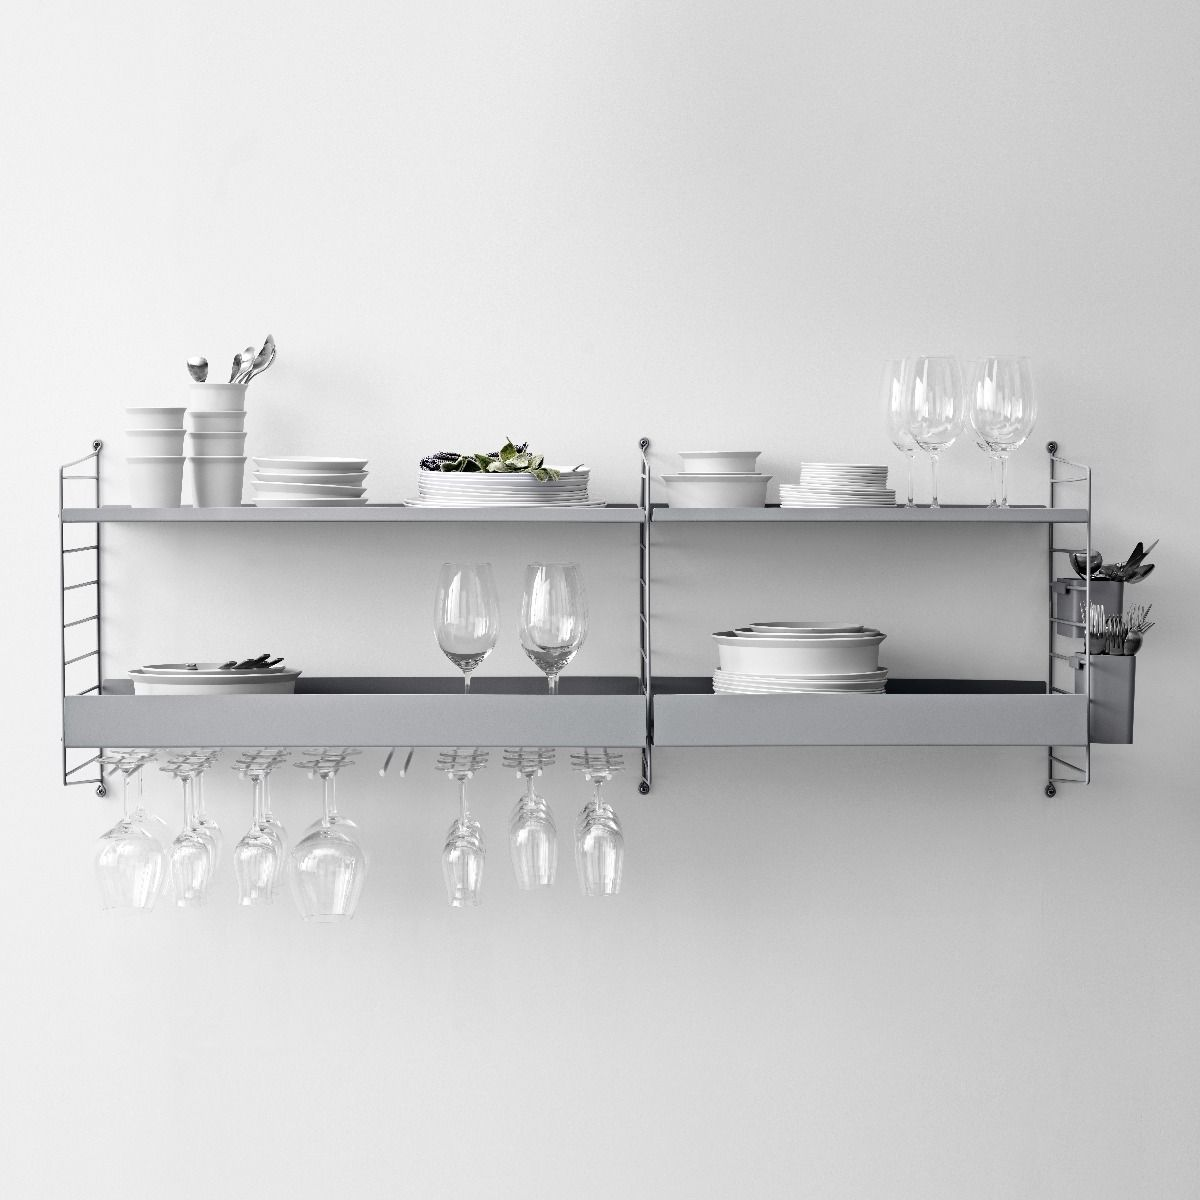 String metal shelves 78 x 30 in grey with wine glass hangers